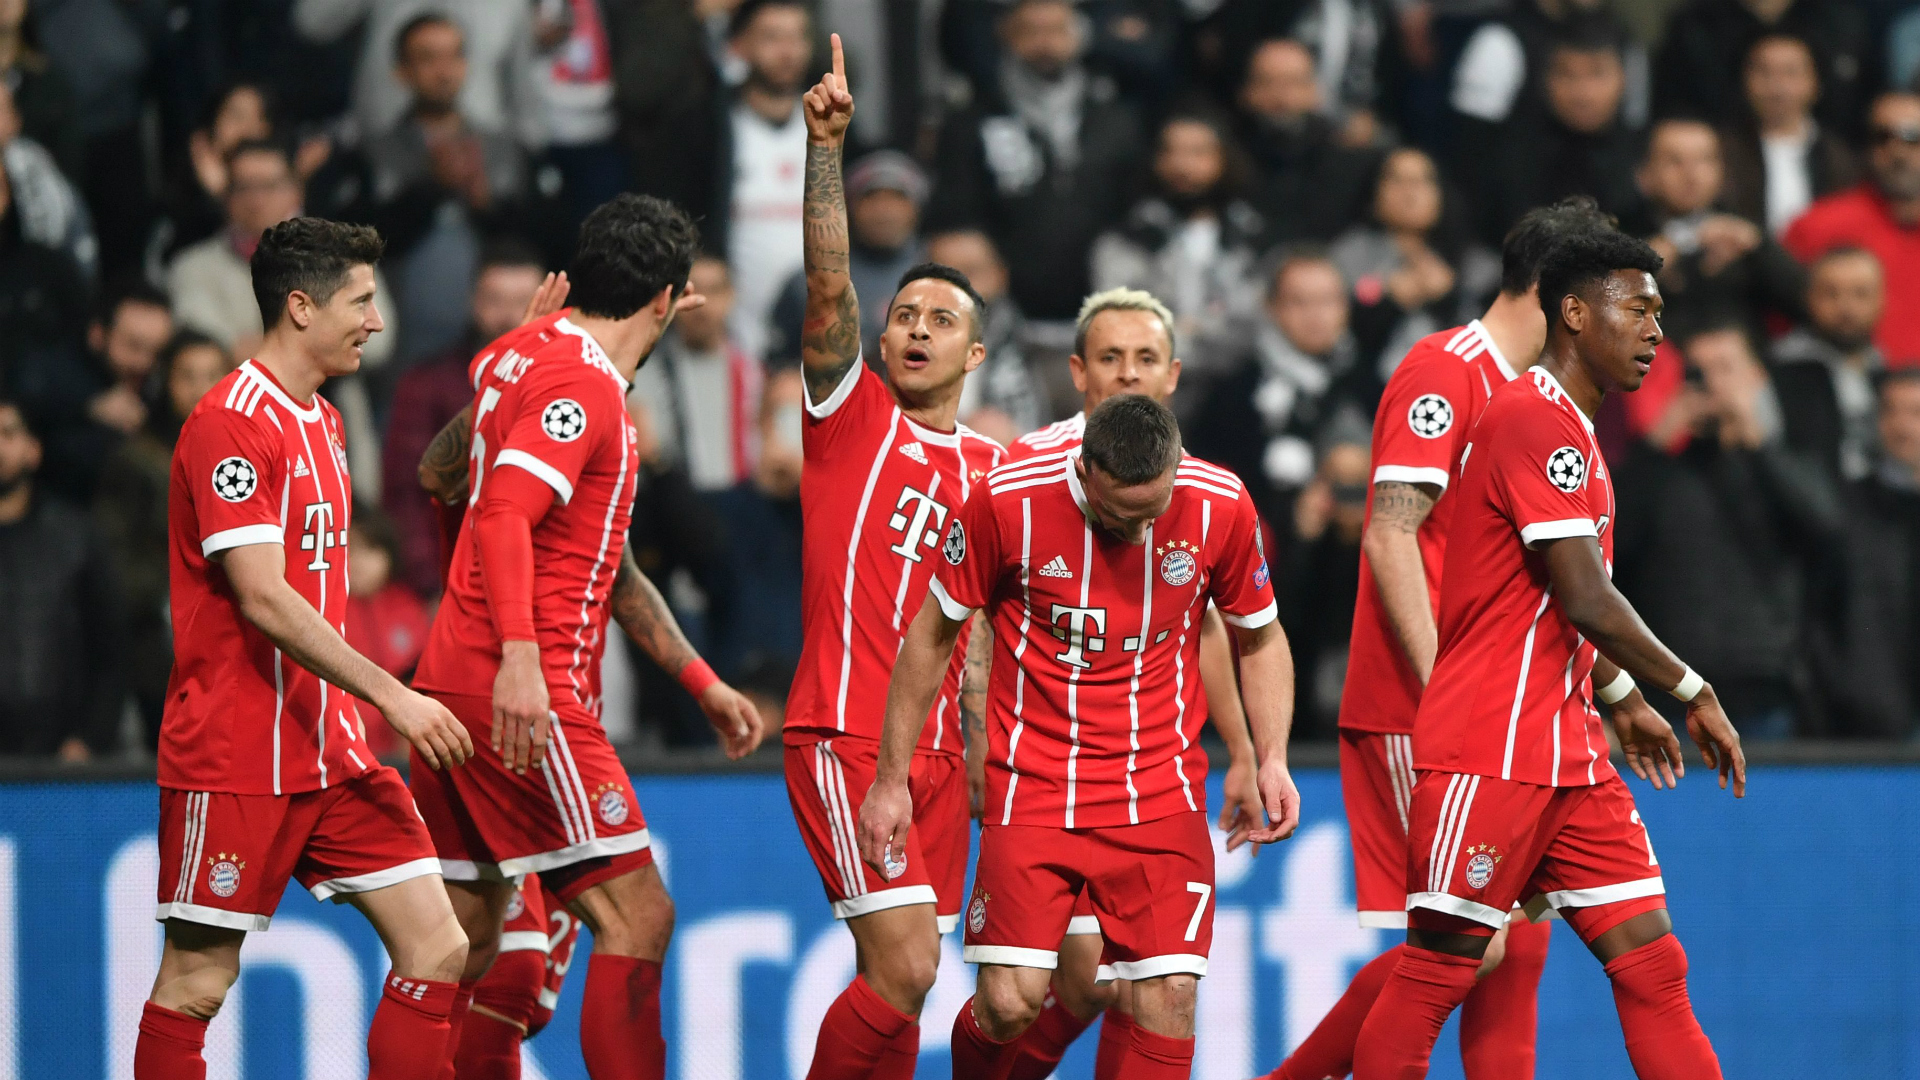 Thiago Bayern Munich goal celebration vs Besiktas UCL 03142018